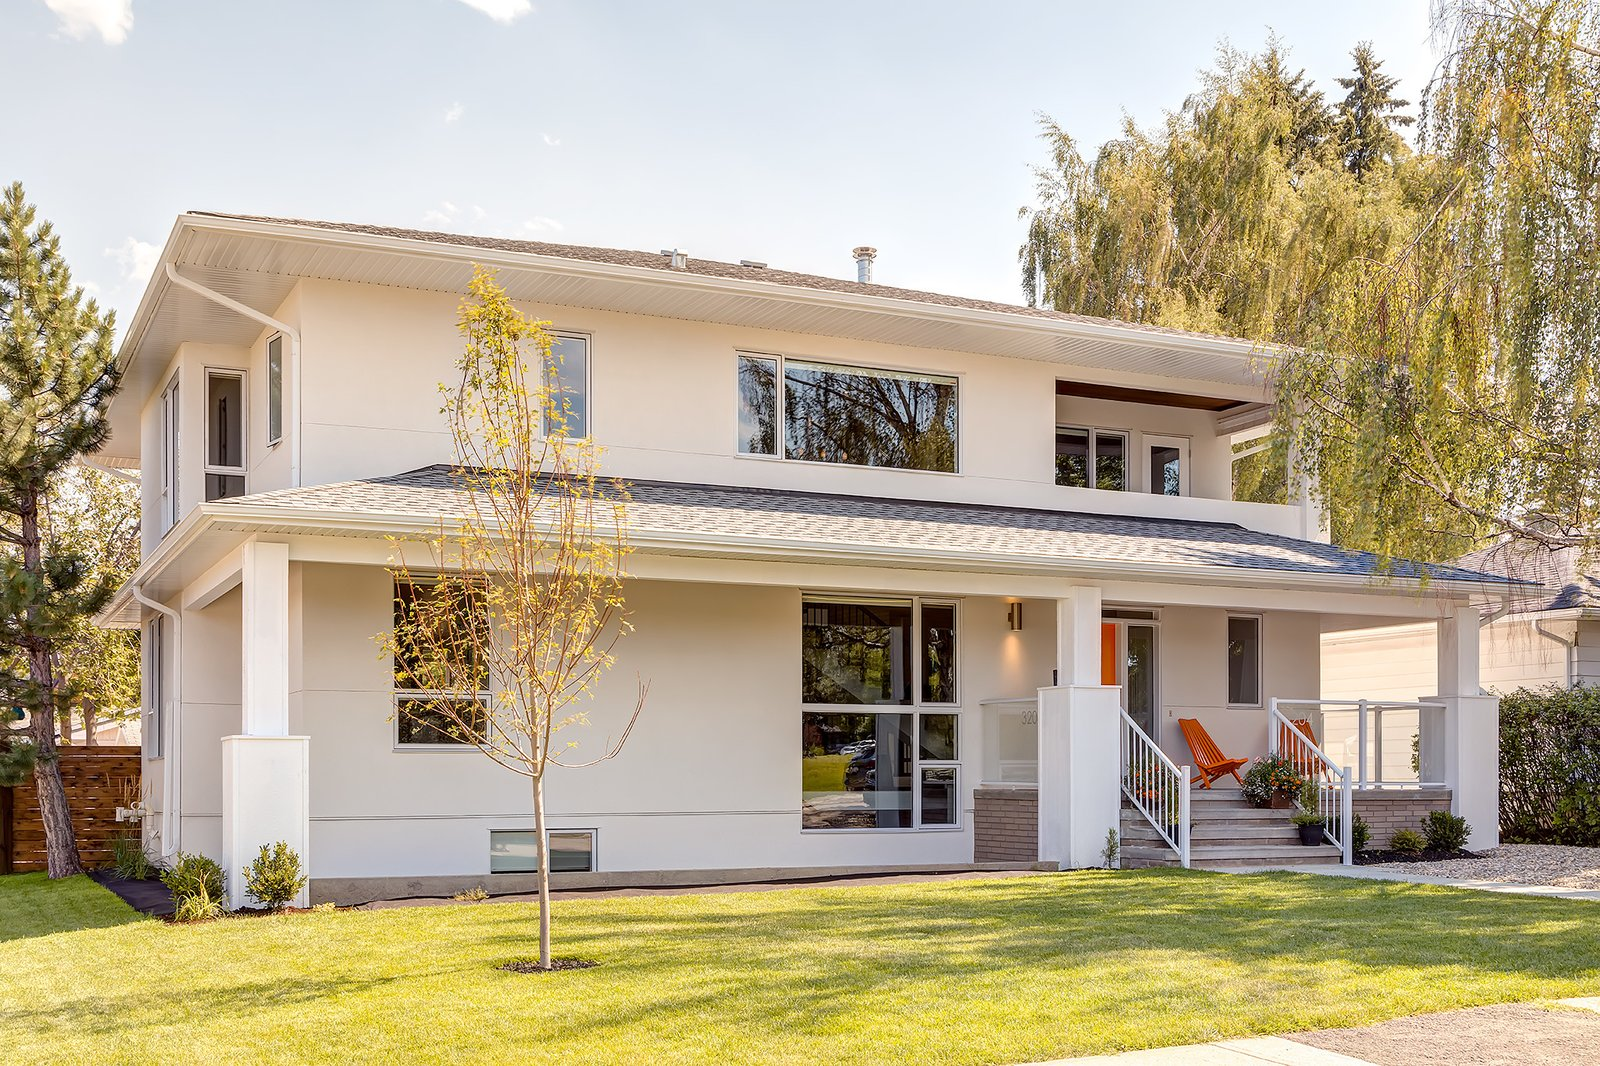 """""""The design needed to allow each group enough privacy and independence so that the home would meet their needs regardless of how many people were under its roof at a given time,"""" Lewis said. Architectural white stucco and tongue and grove cedar comprise the siding, and Cambridge architectural asphalt shingles from IKO cover the roof.  A Calgary Home Makes Space for Three Generations by Kelly Dawson"""